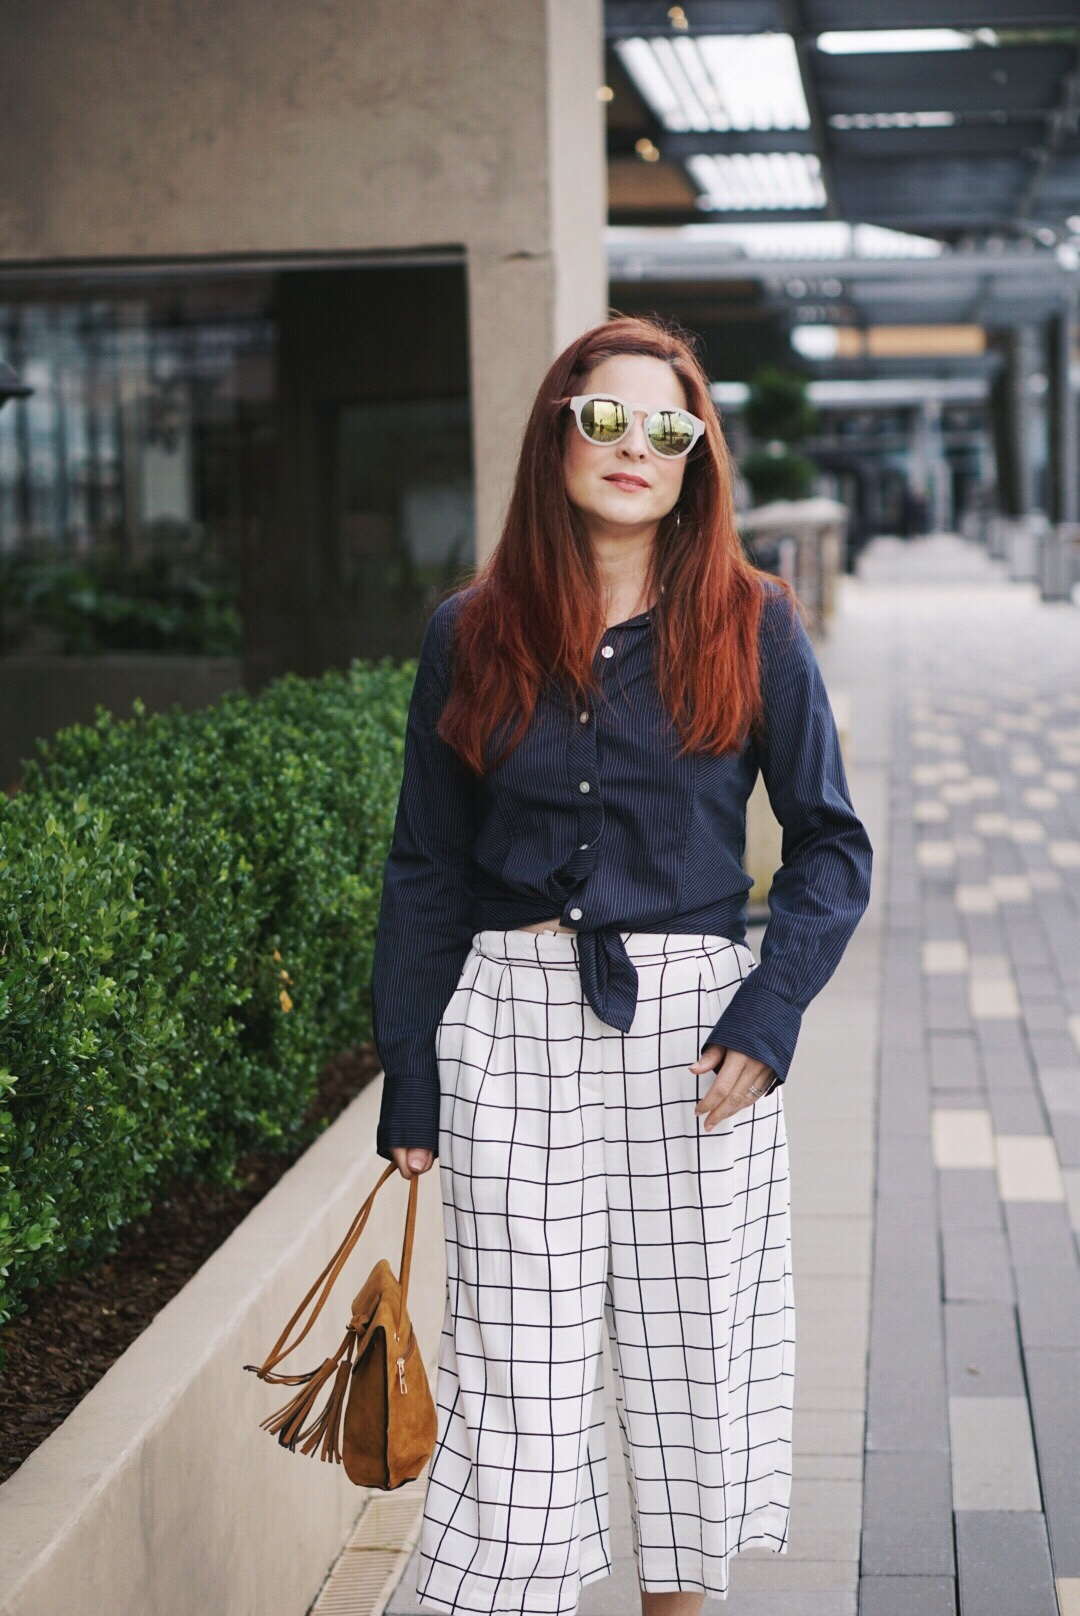 best pant for all seasons, blue button up shirt, grid culotte pants, fringe bag, sixties style sunglasses, red hair ideas, culotte outfits